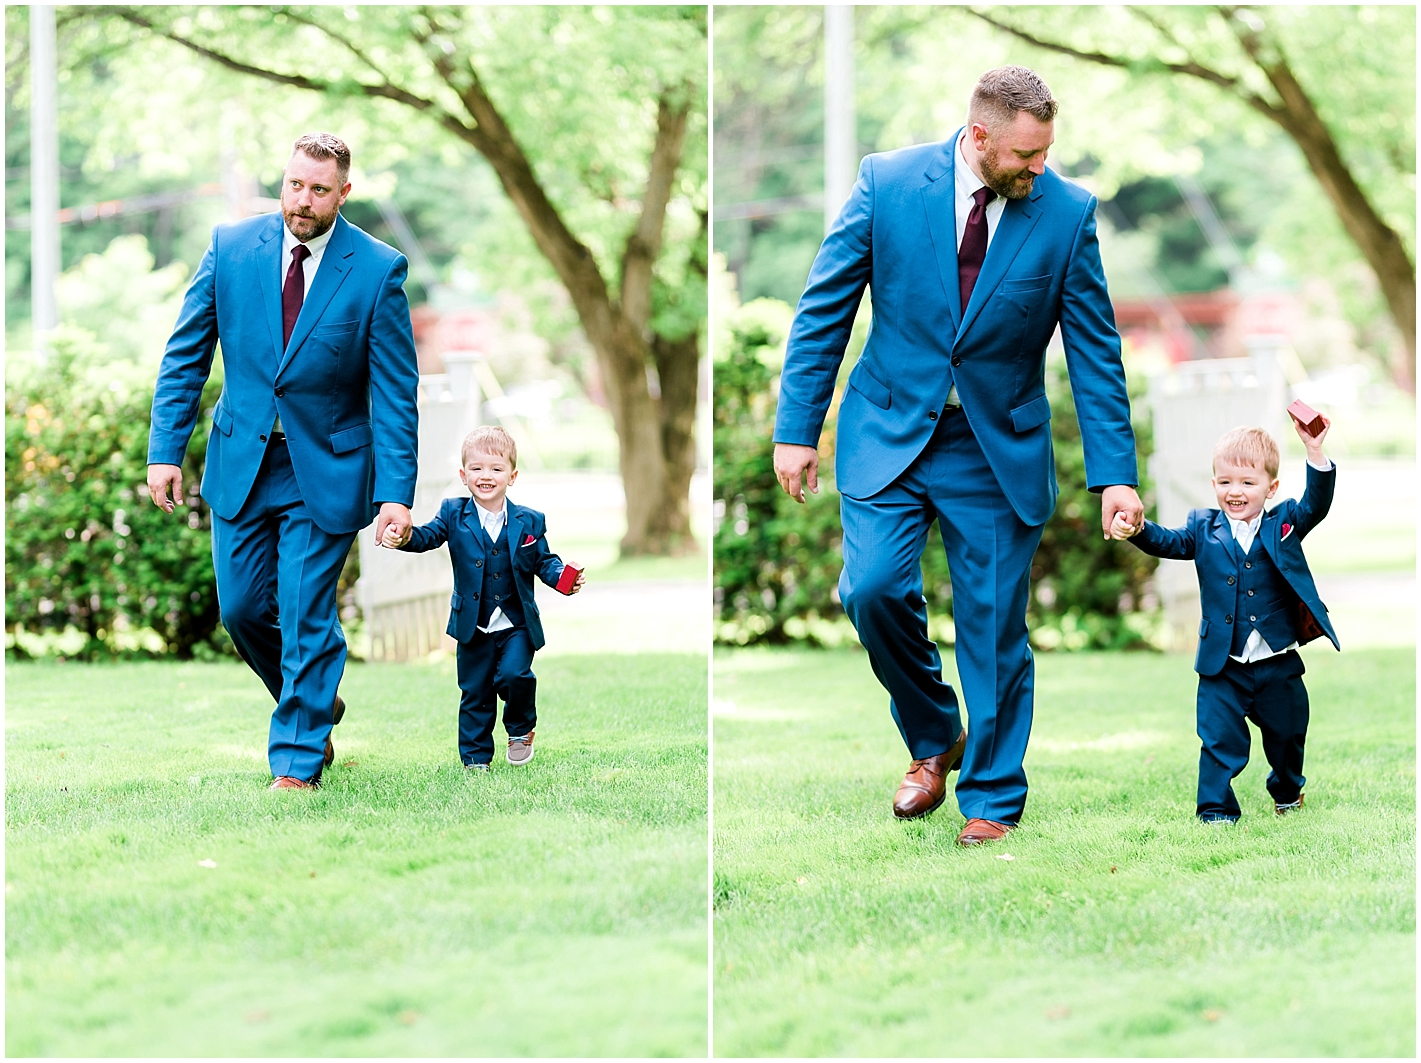 Ring bearer Photos By Alyssa Parker Photography